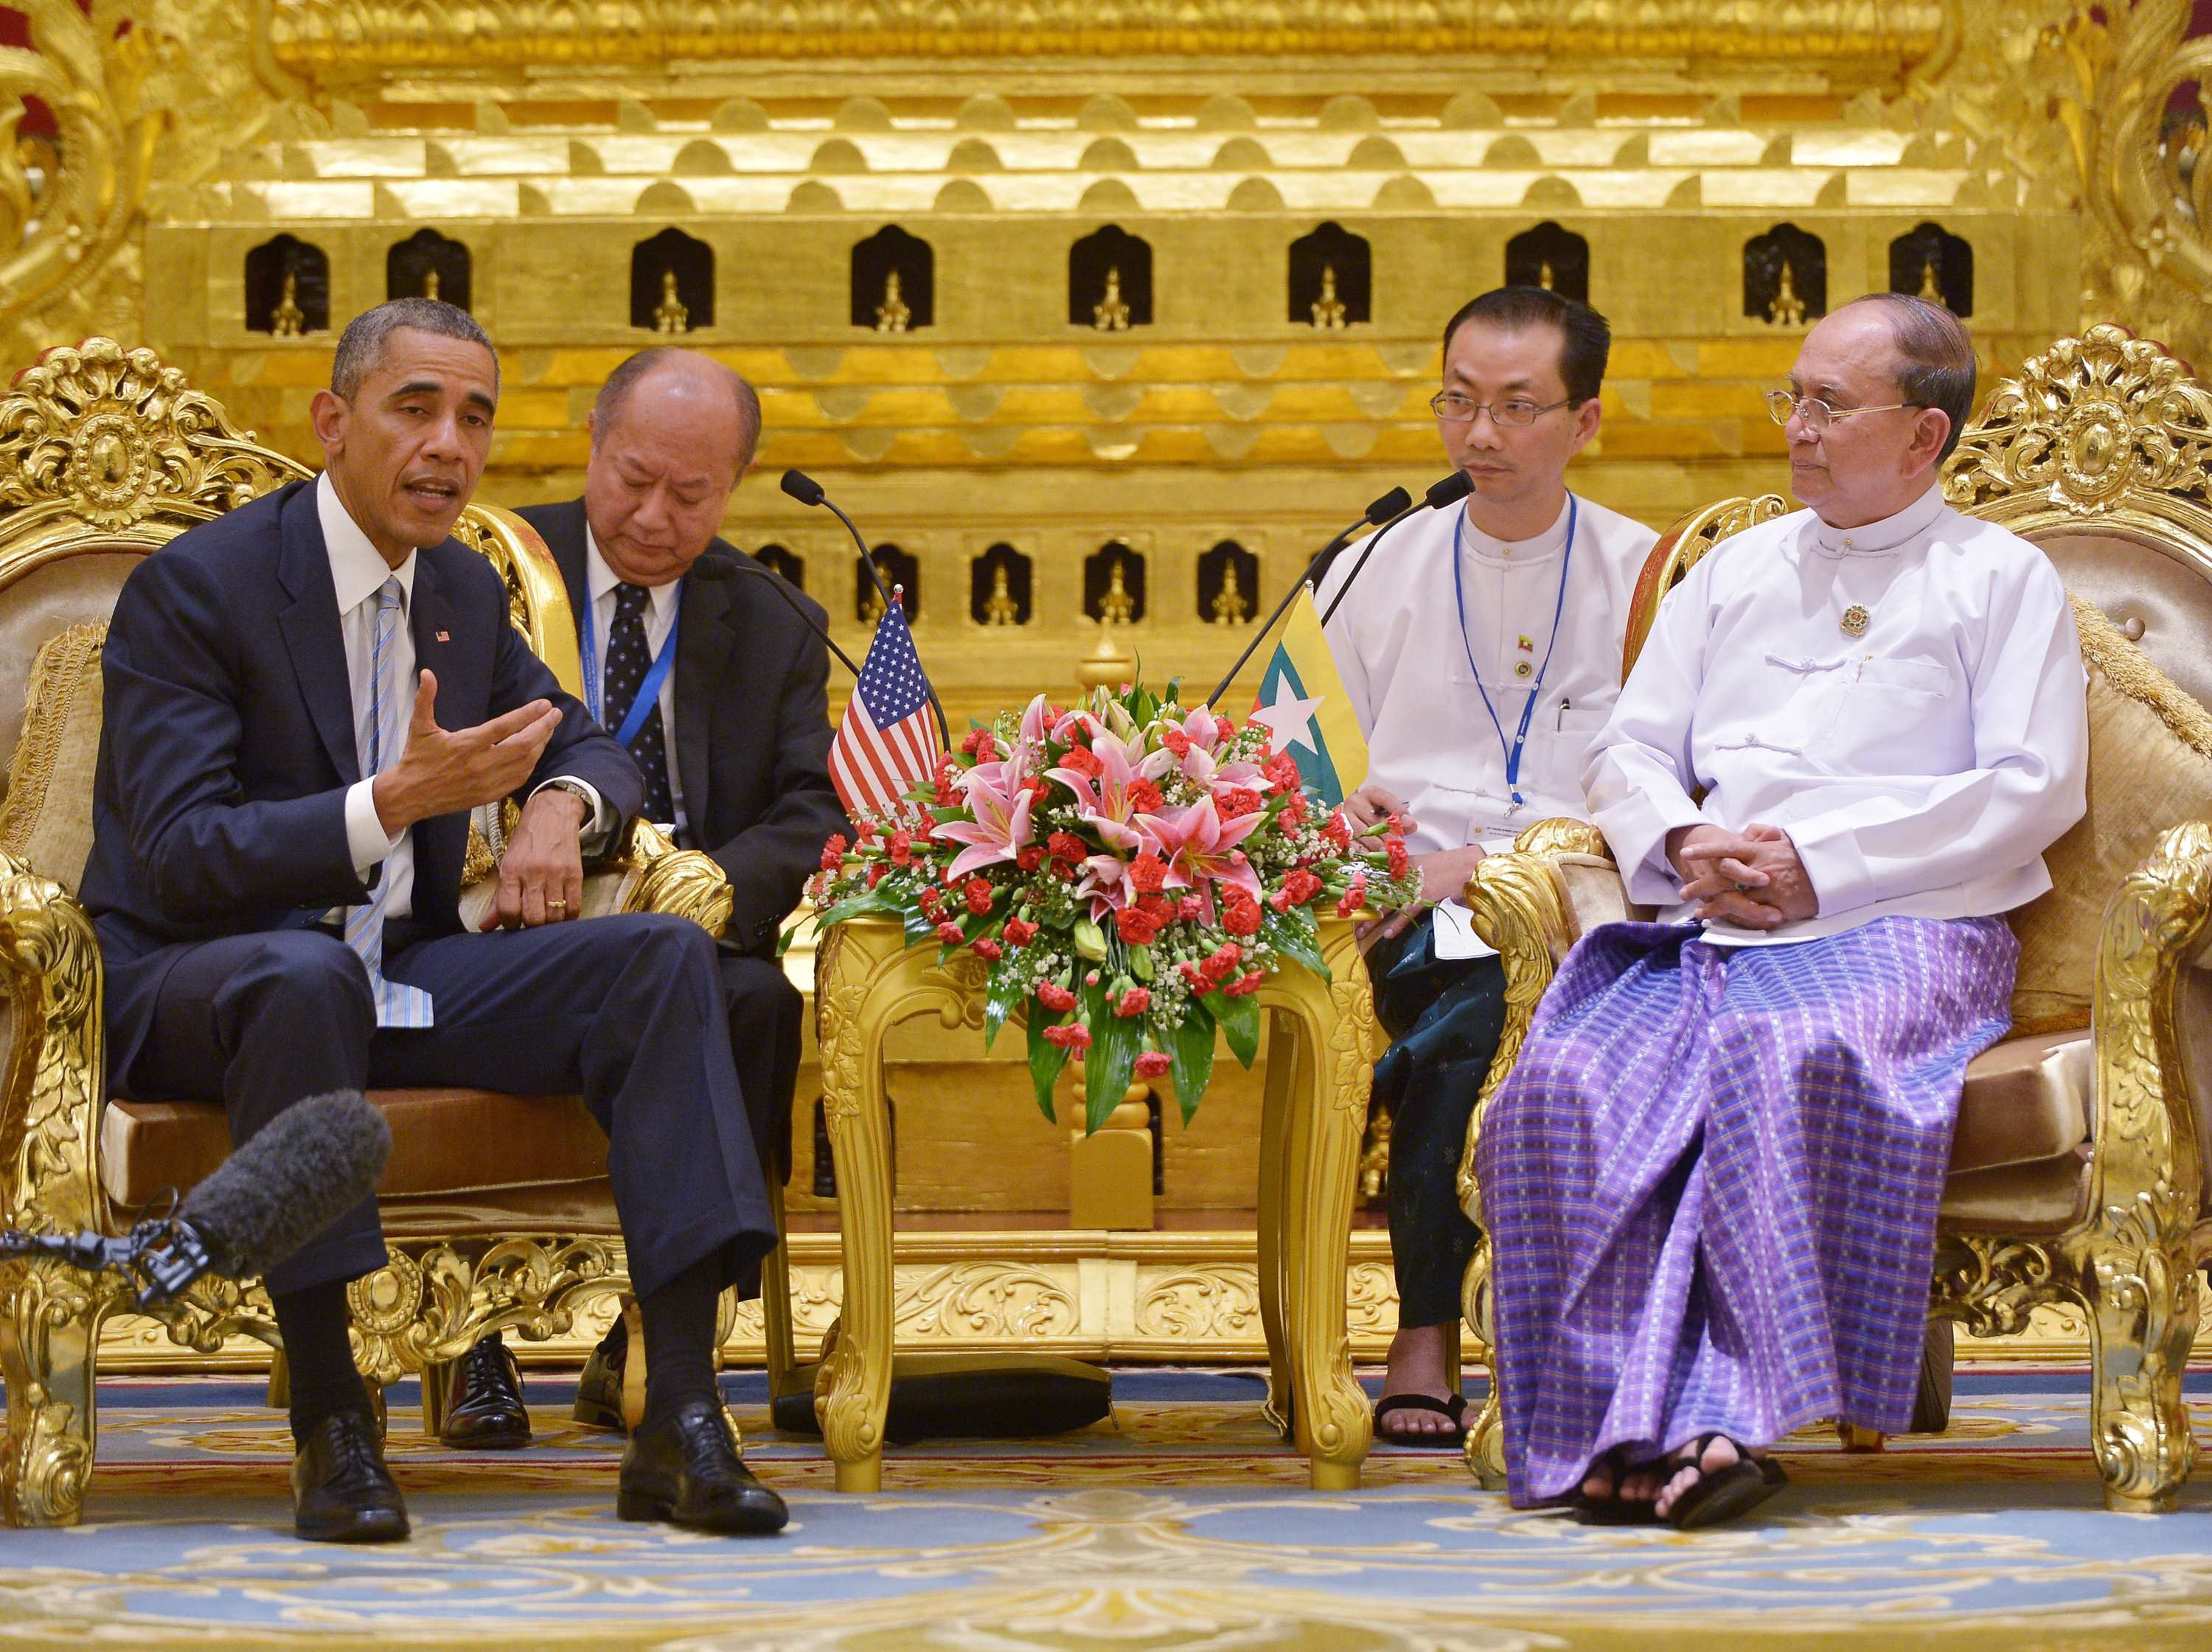 US President Barack Obama speaks during a bilateral meeting with Myanmar's President Thein Sein (R) at the Presidential Palace in Naypyidaw, Myanmar.